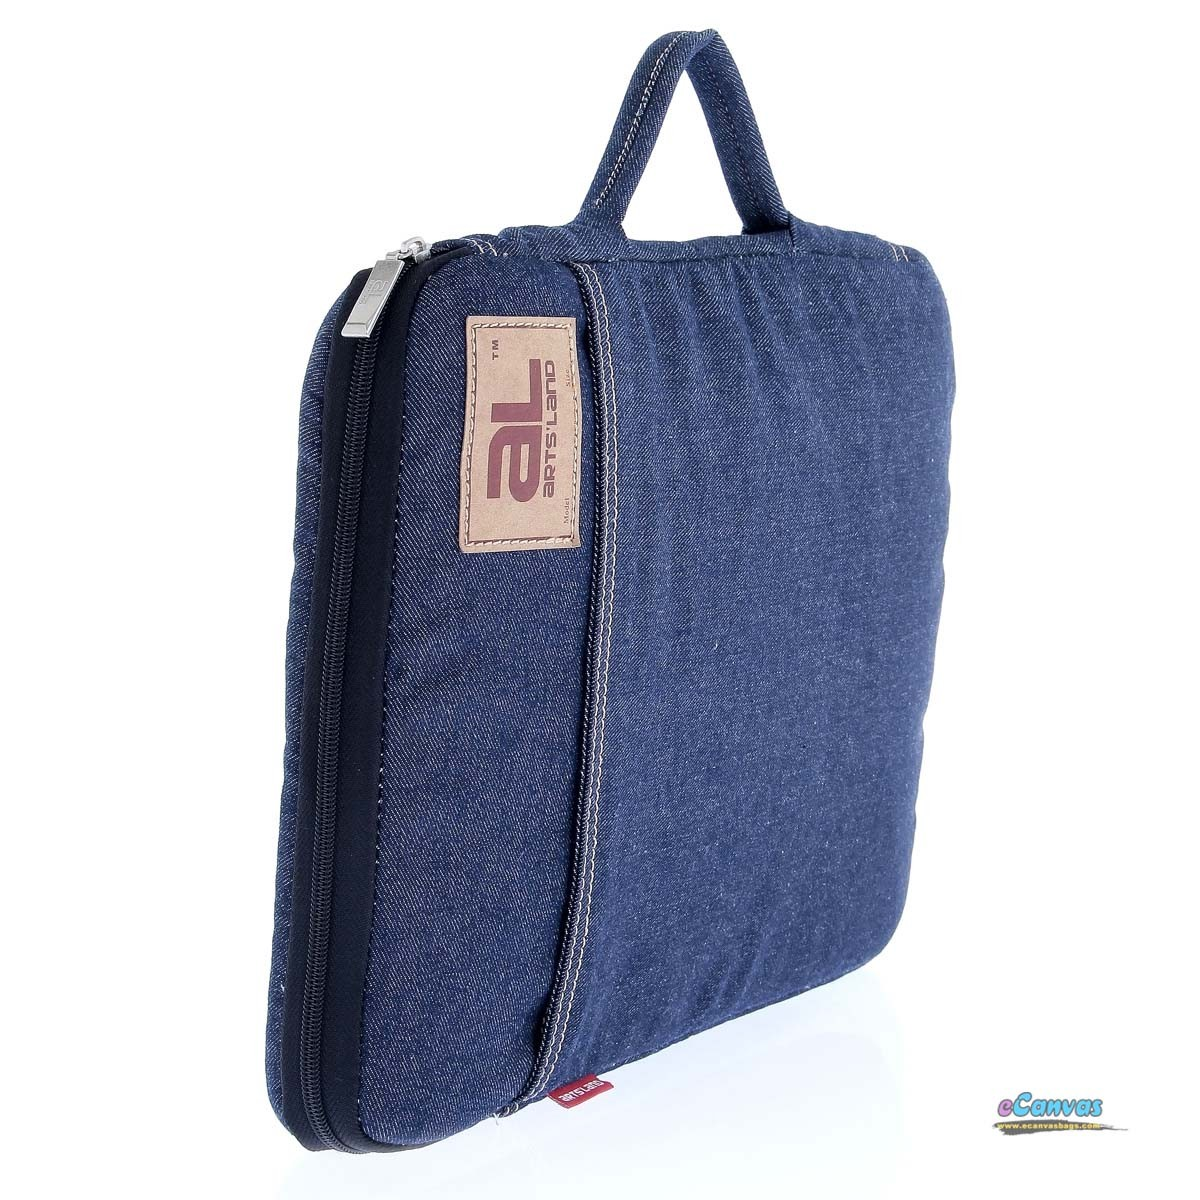 Jean purse, 14 inch laptop bag, blue Ipad bag - E-CanvasBags